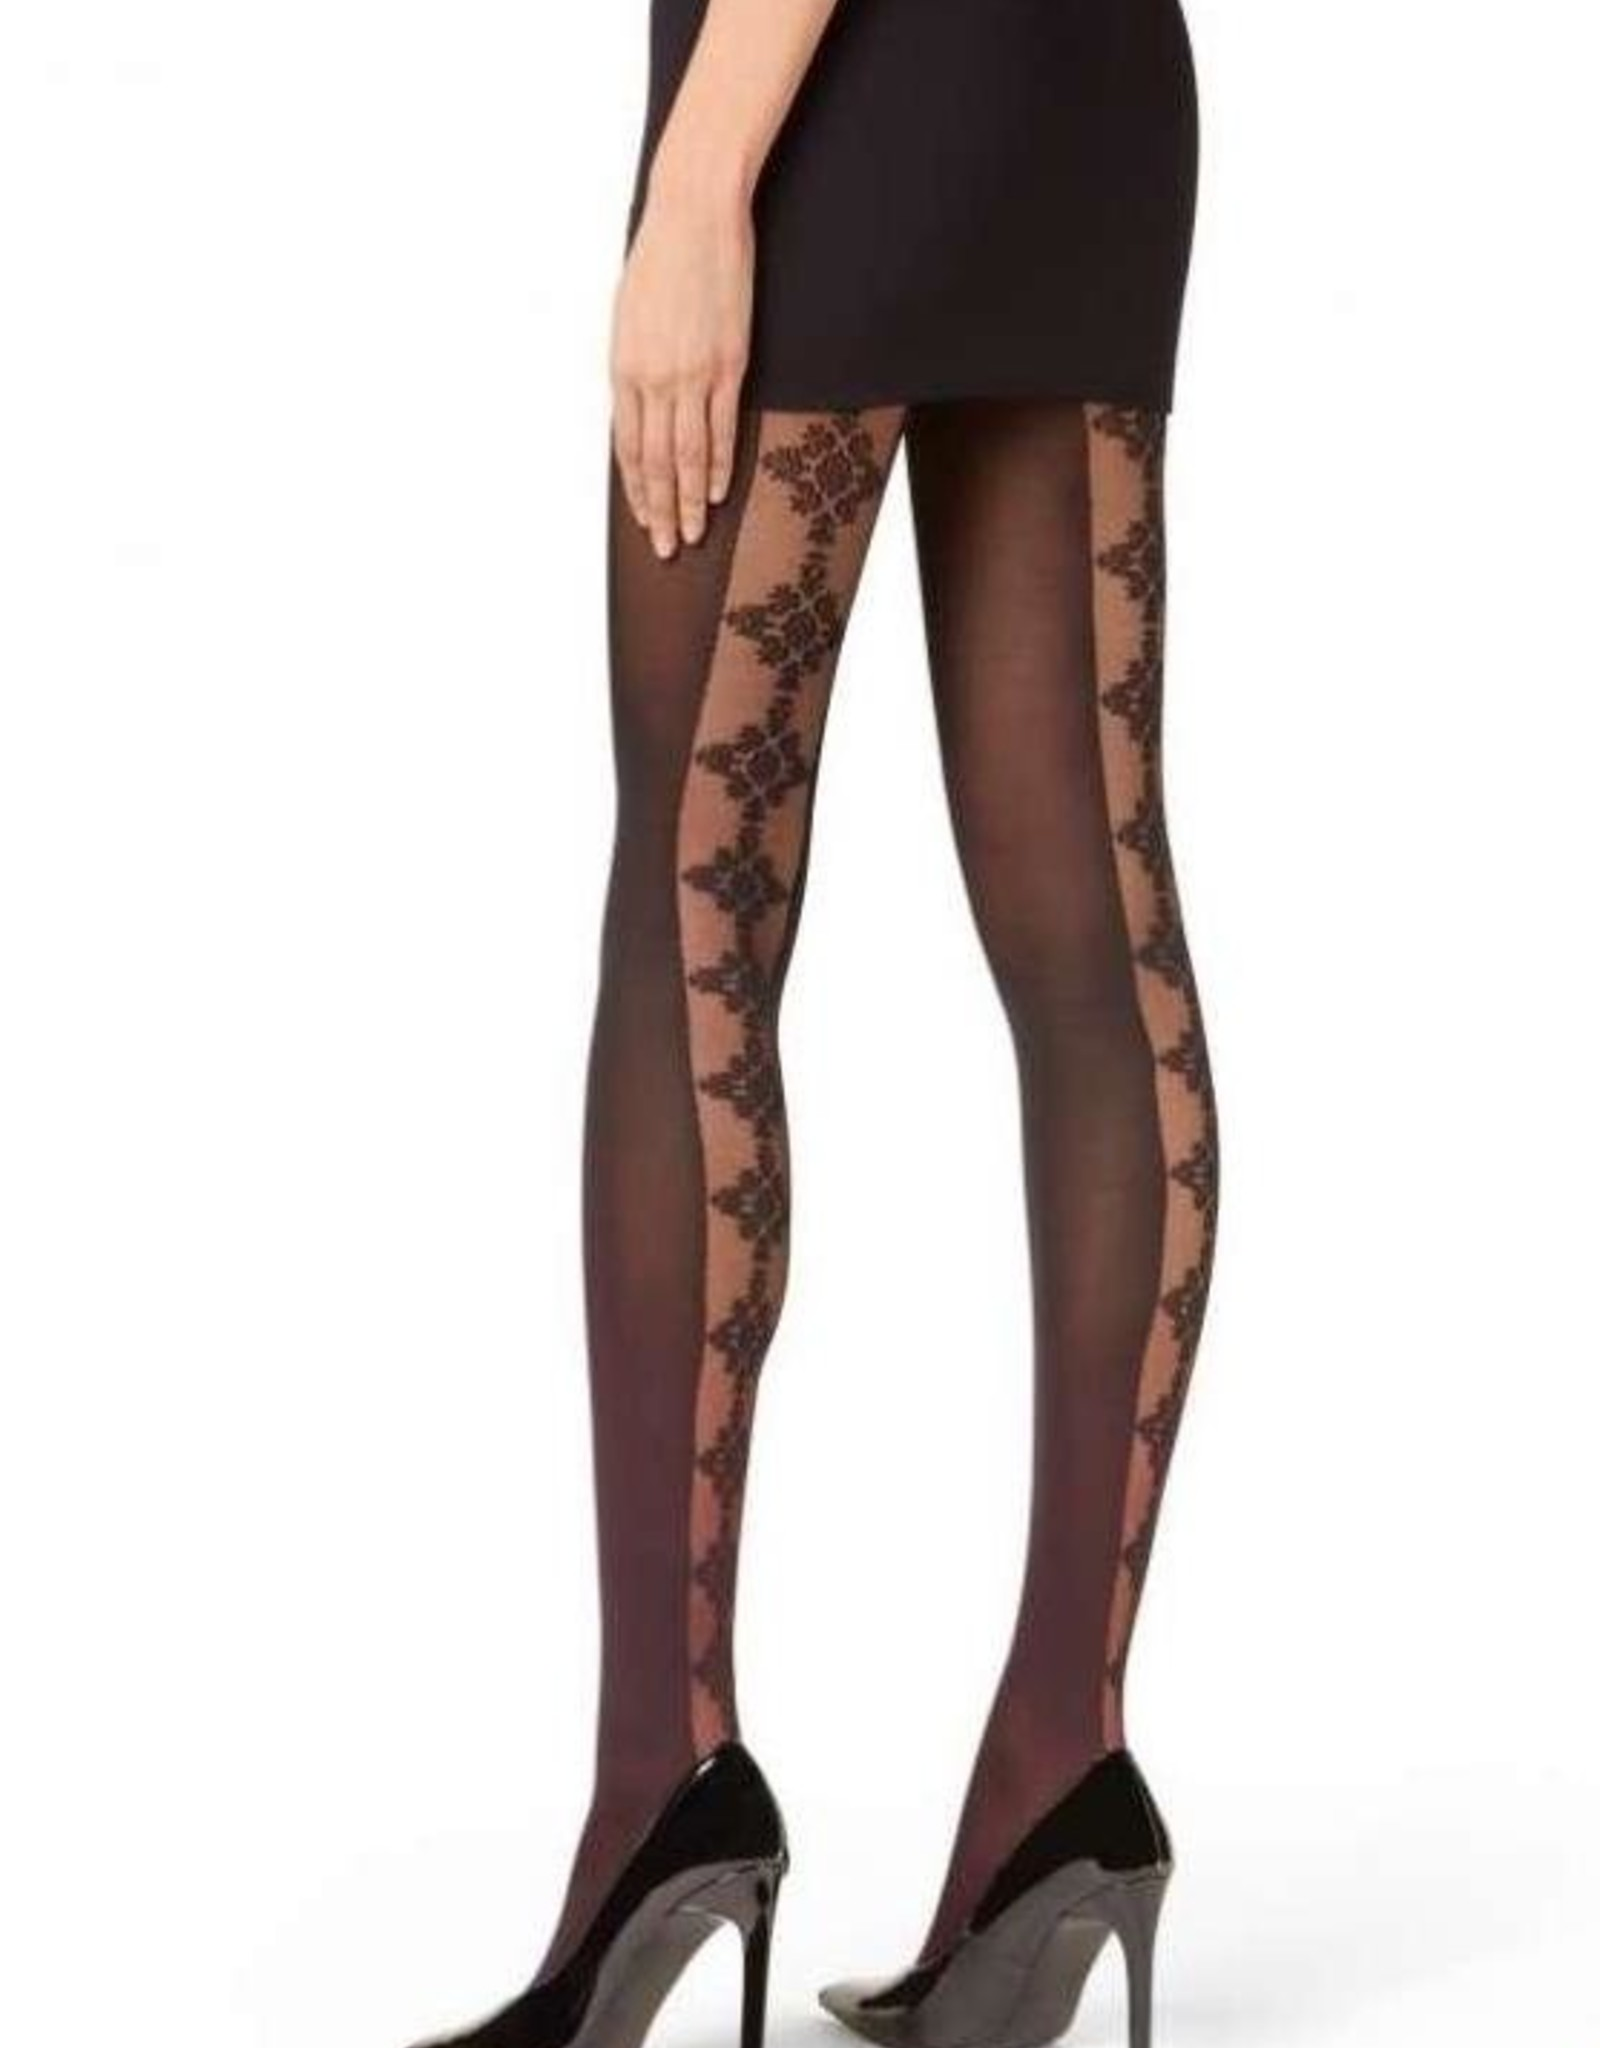 Fatale Tights